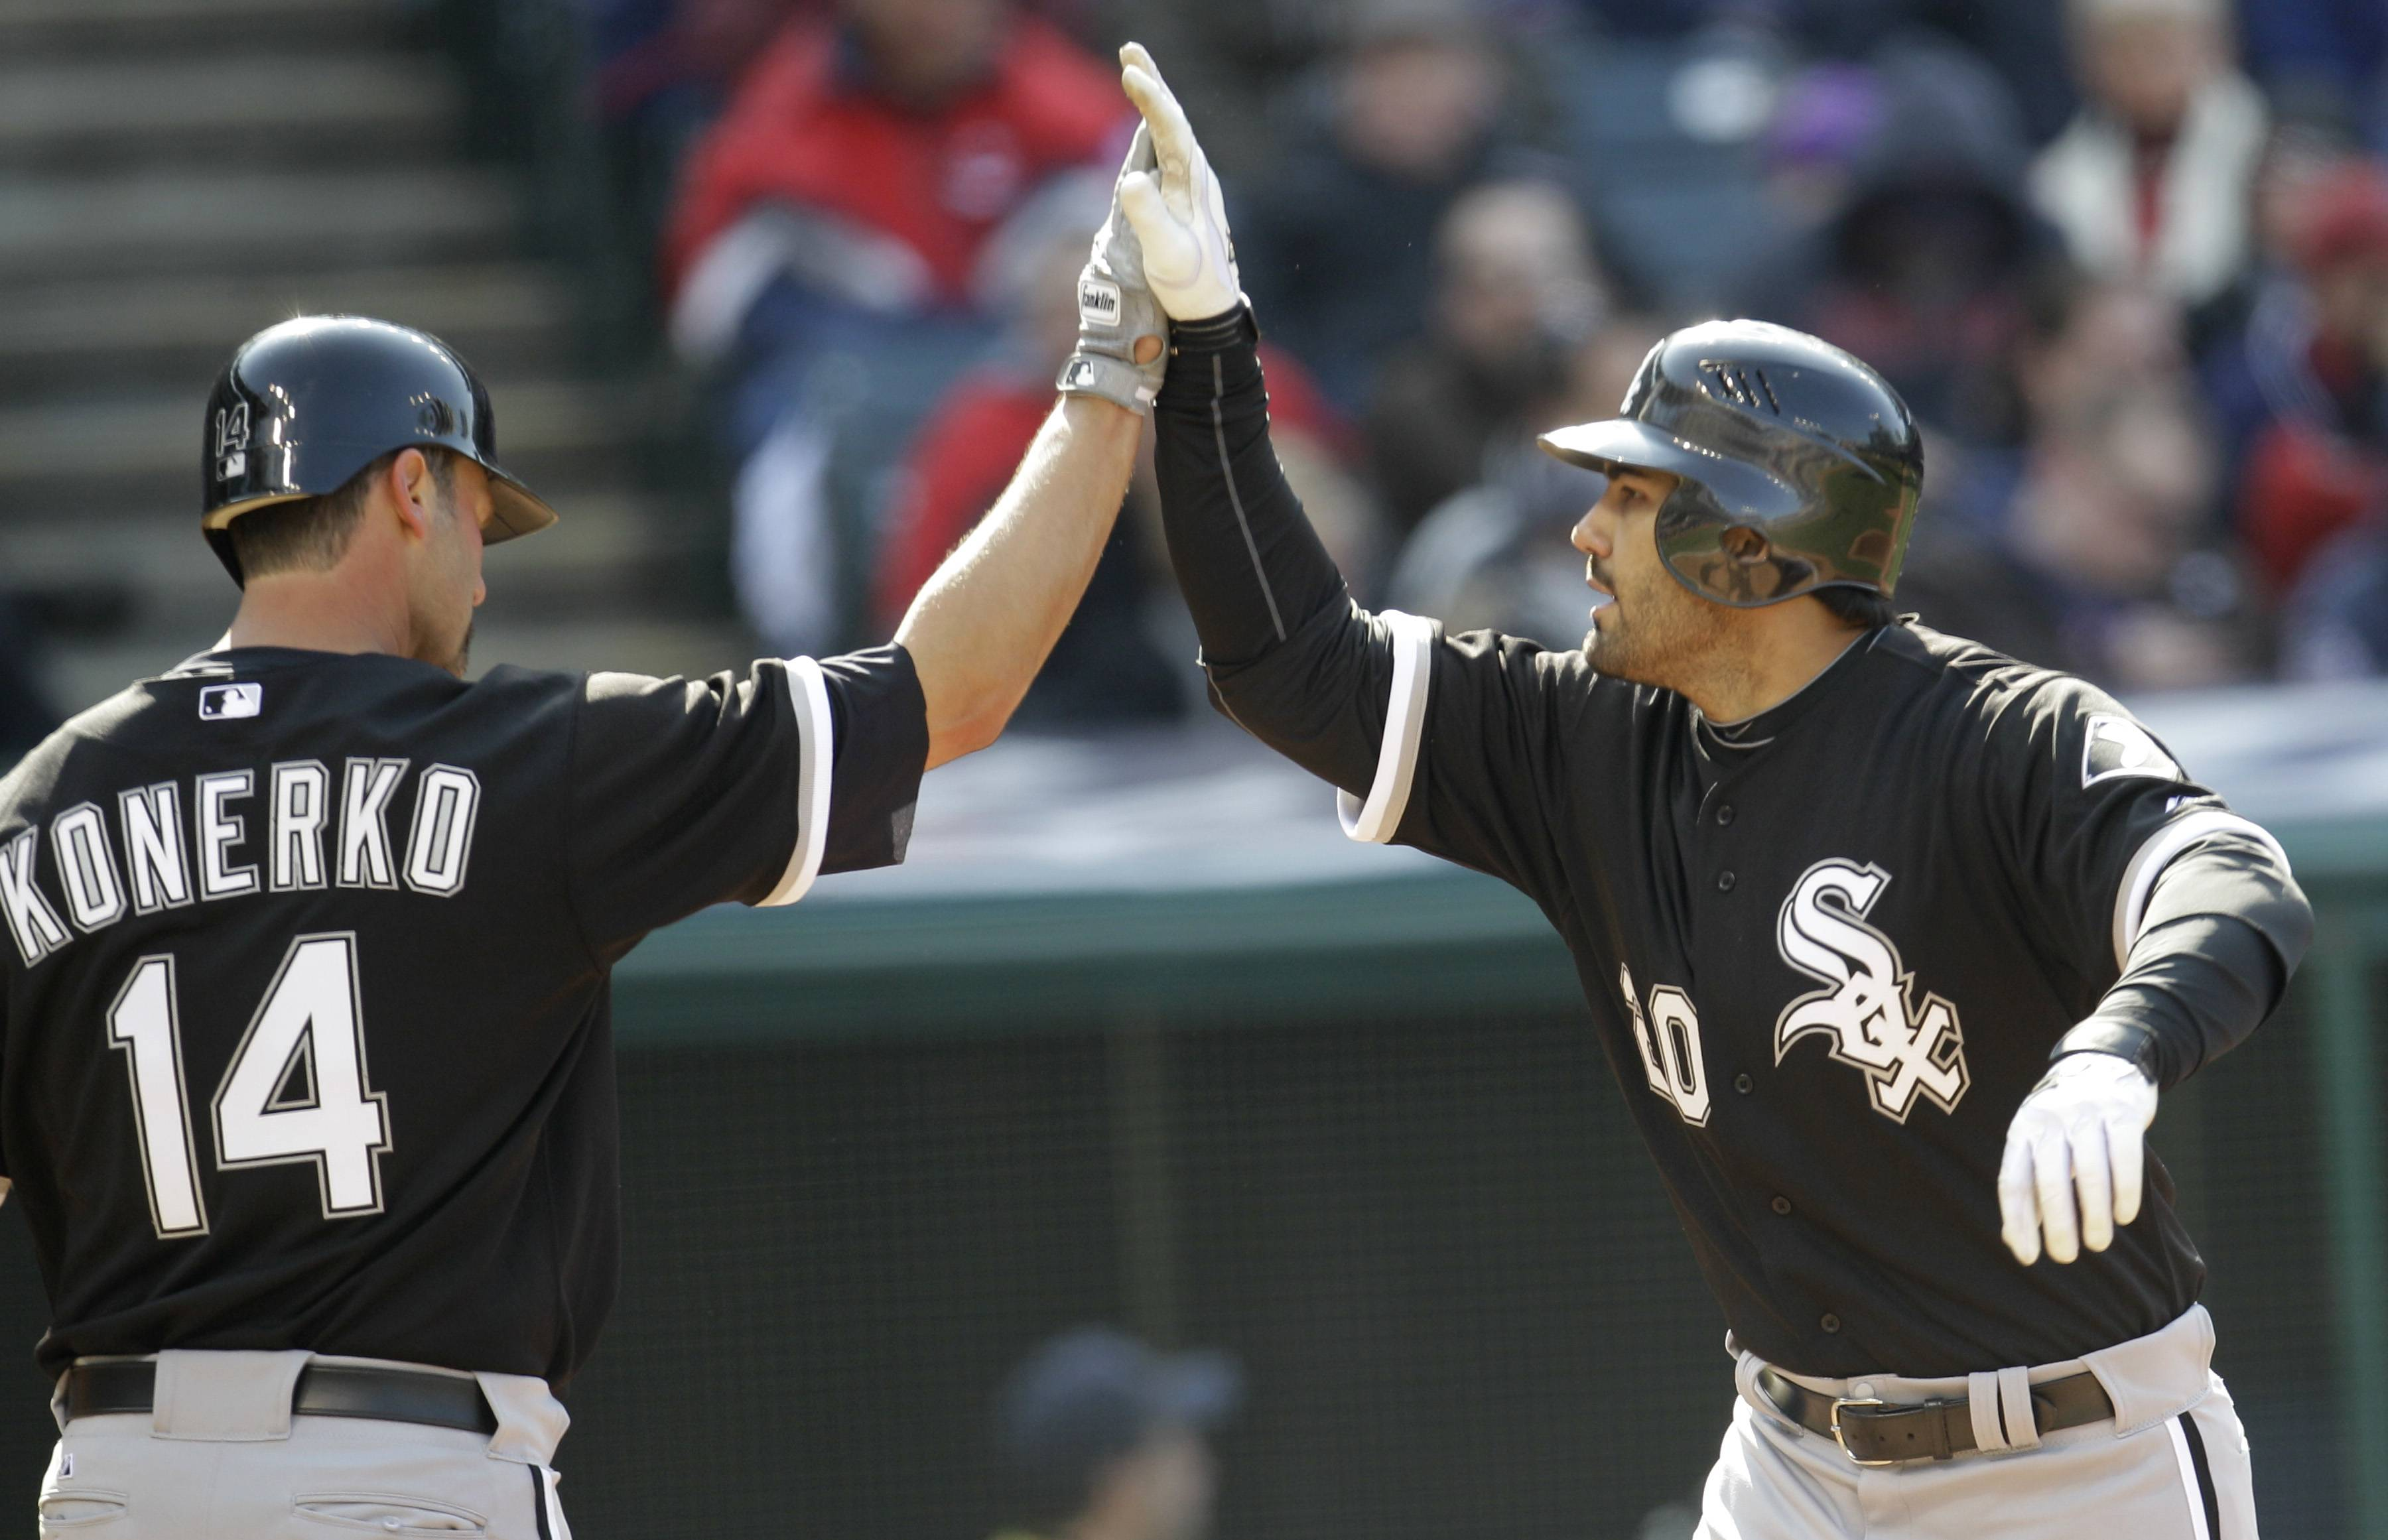 White Sox outfielder Carlos Quentin is congratulated by Paul Konerko after Quentin hit a two run home run in the third inning against the Cleveland Indians Friday.